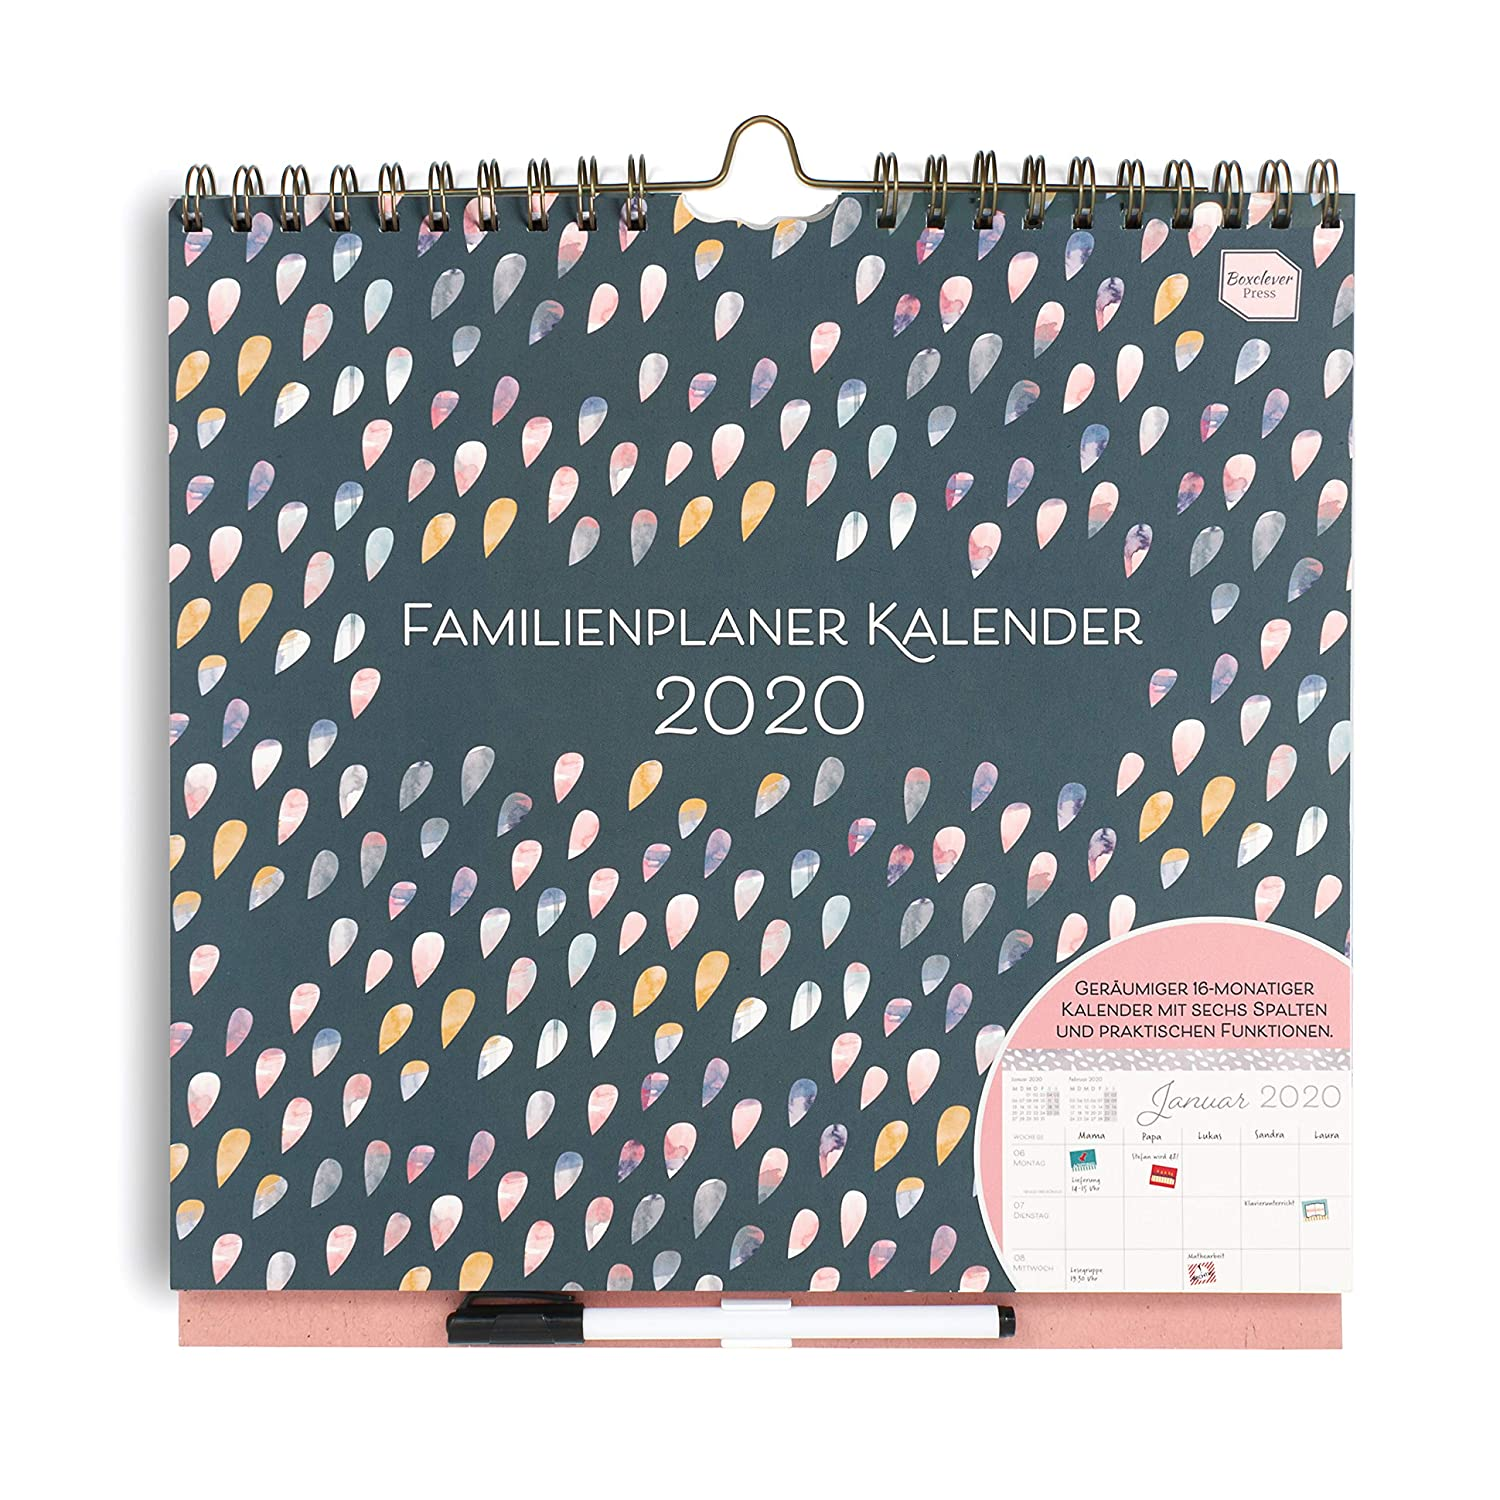 Calendario Tedesco 2020.In Tedesco Boxclever Press Familienplaner Kalender 2019